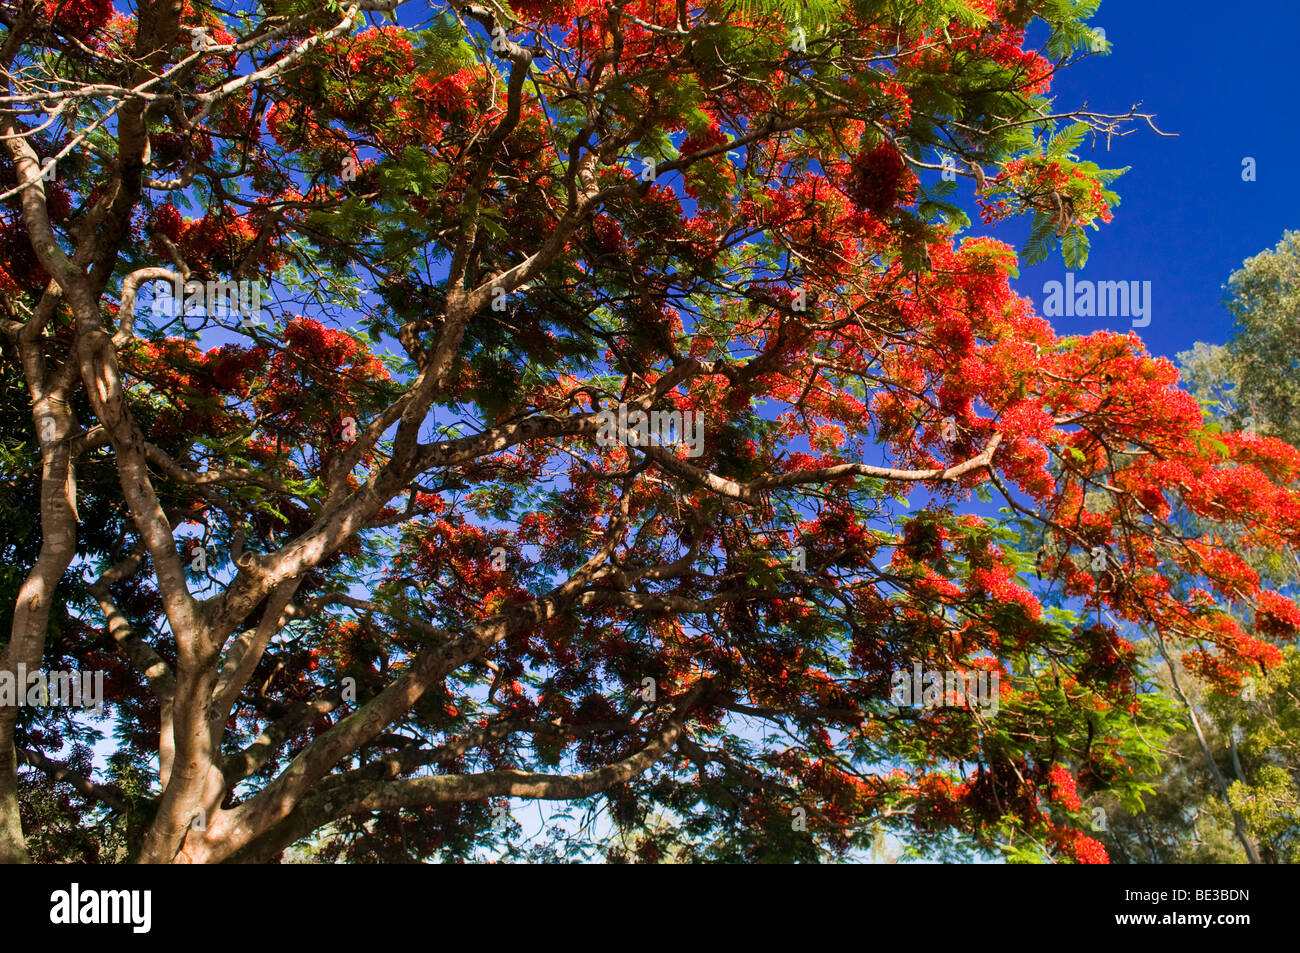 Royal Poinciana tree in full bloom, Fairfield, Queensland, Australia - Stock Image